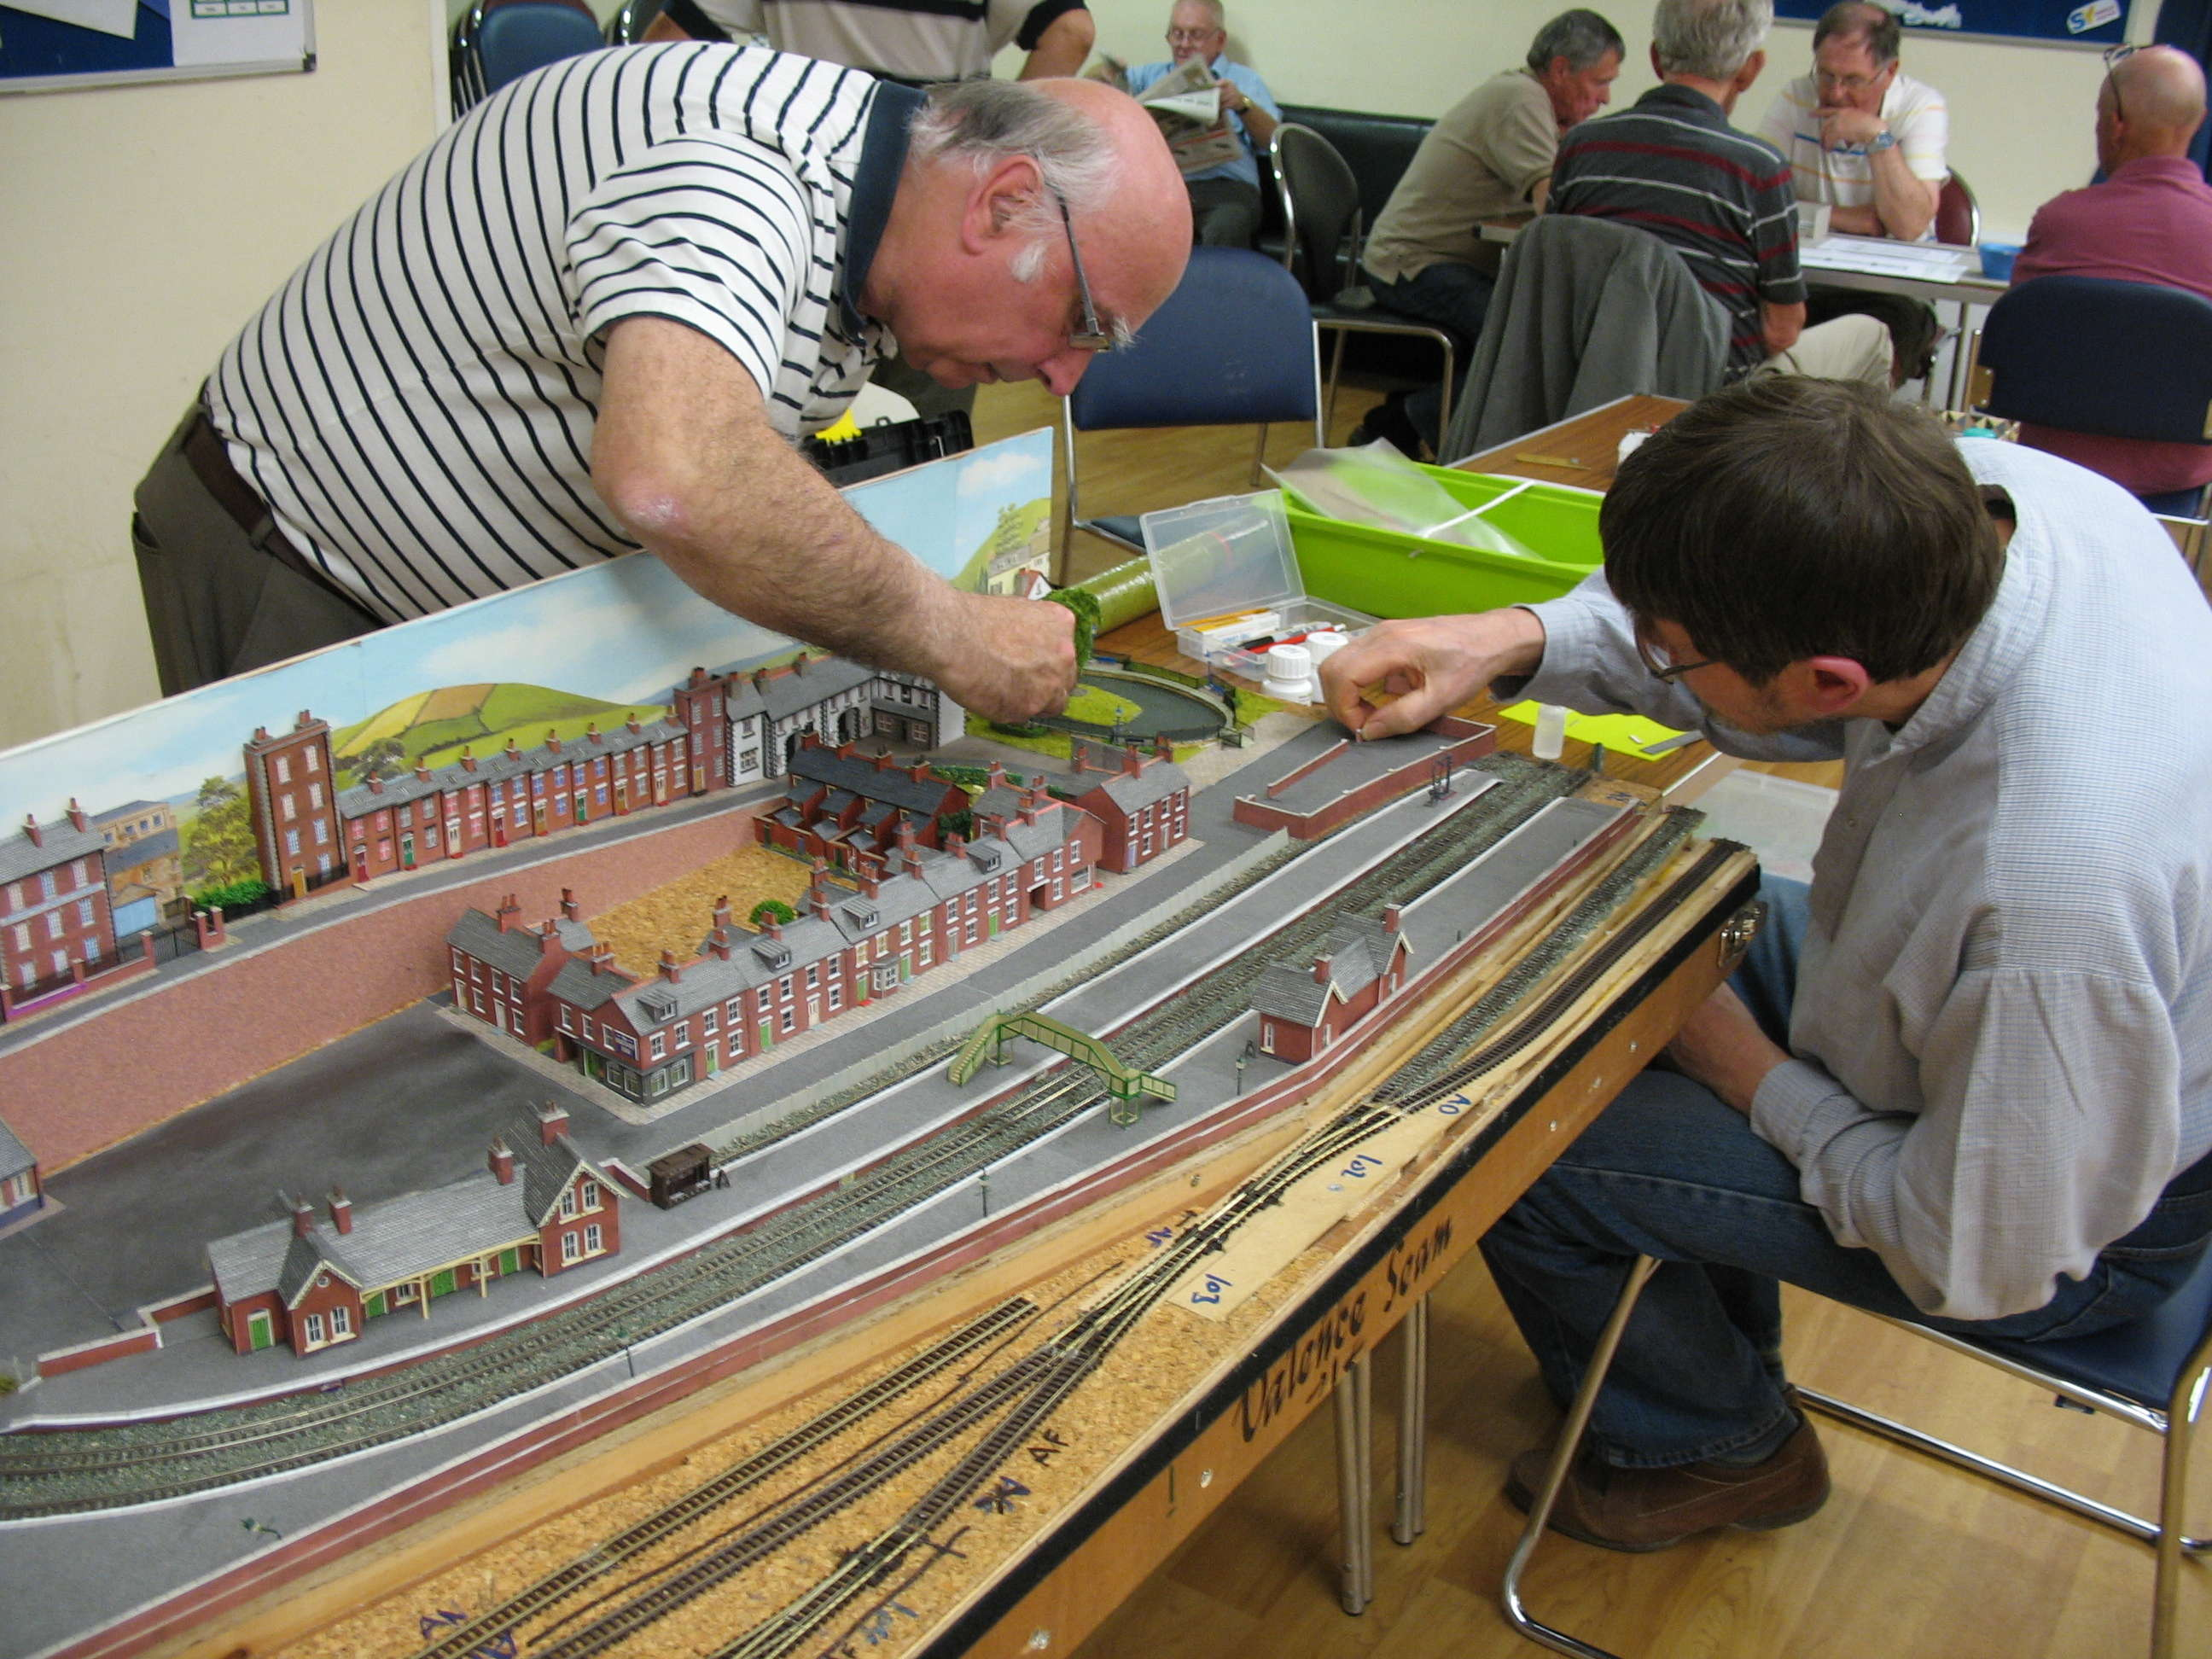 OSP&WL N gauge layout has scenic details added